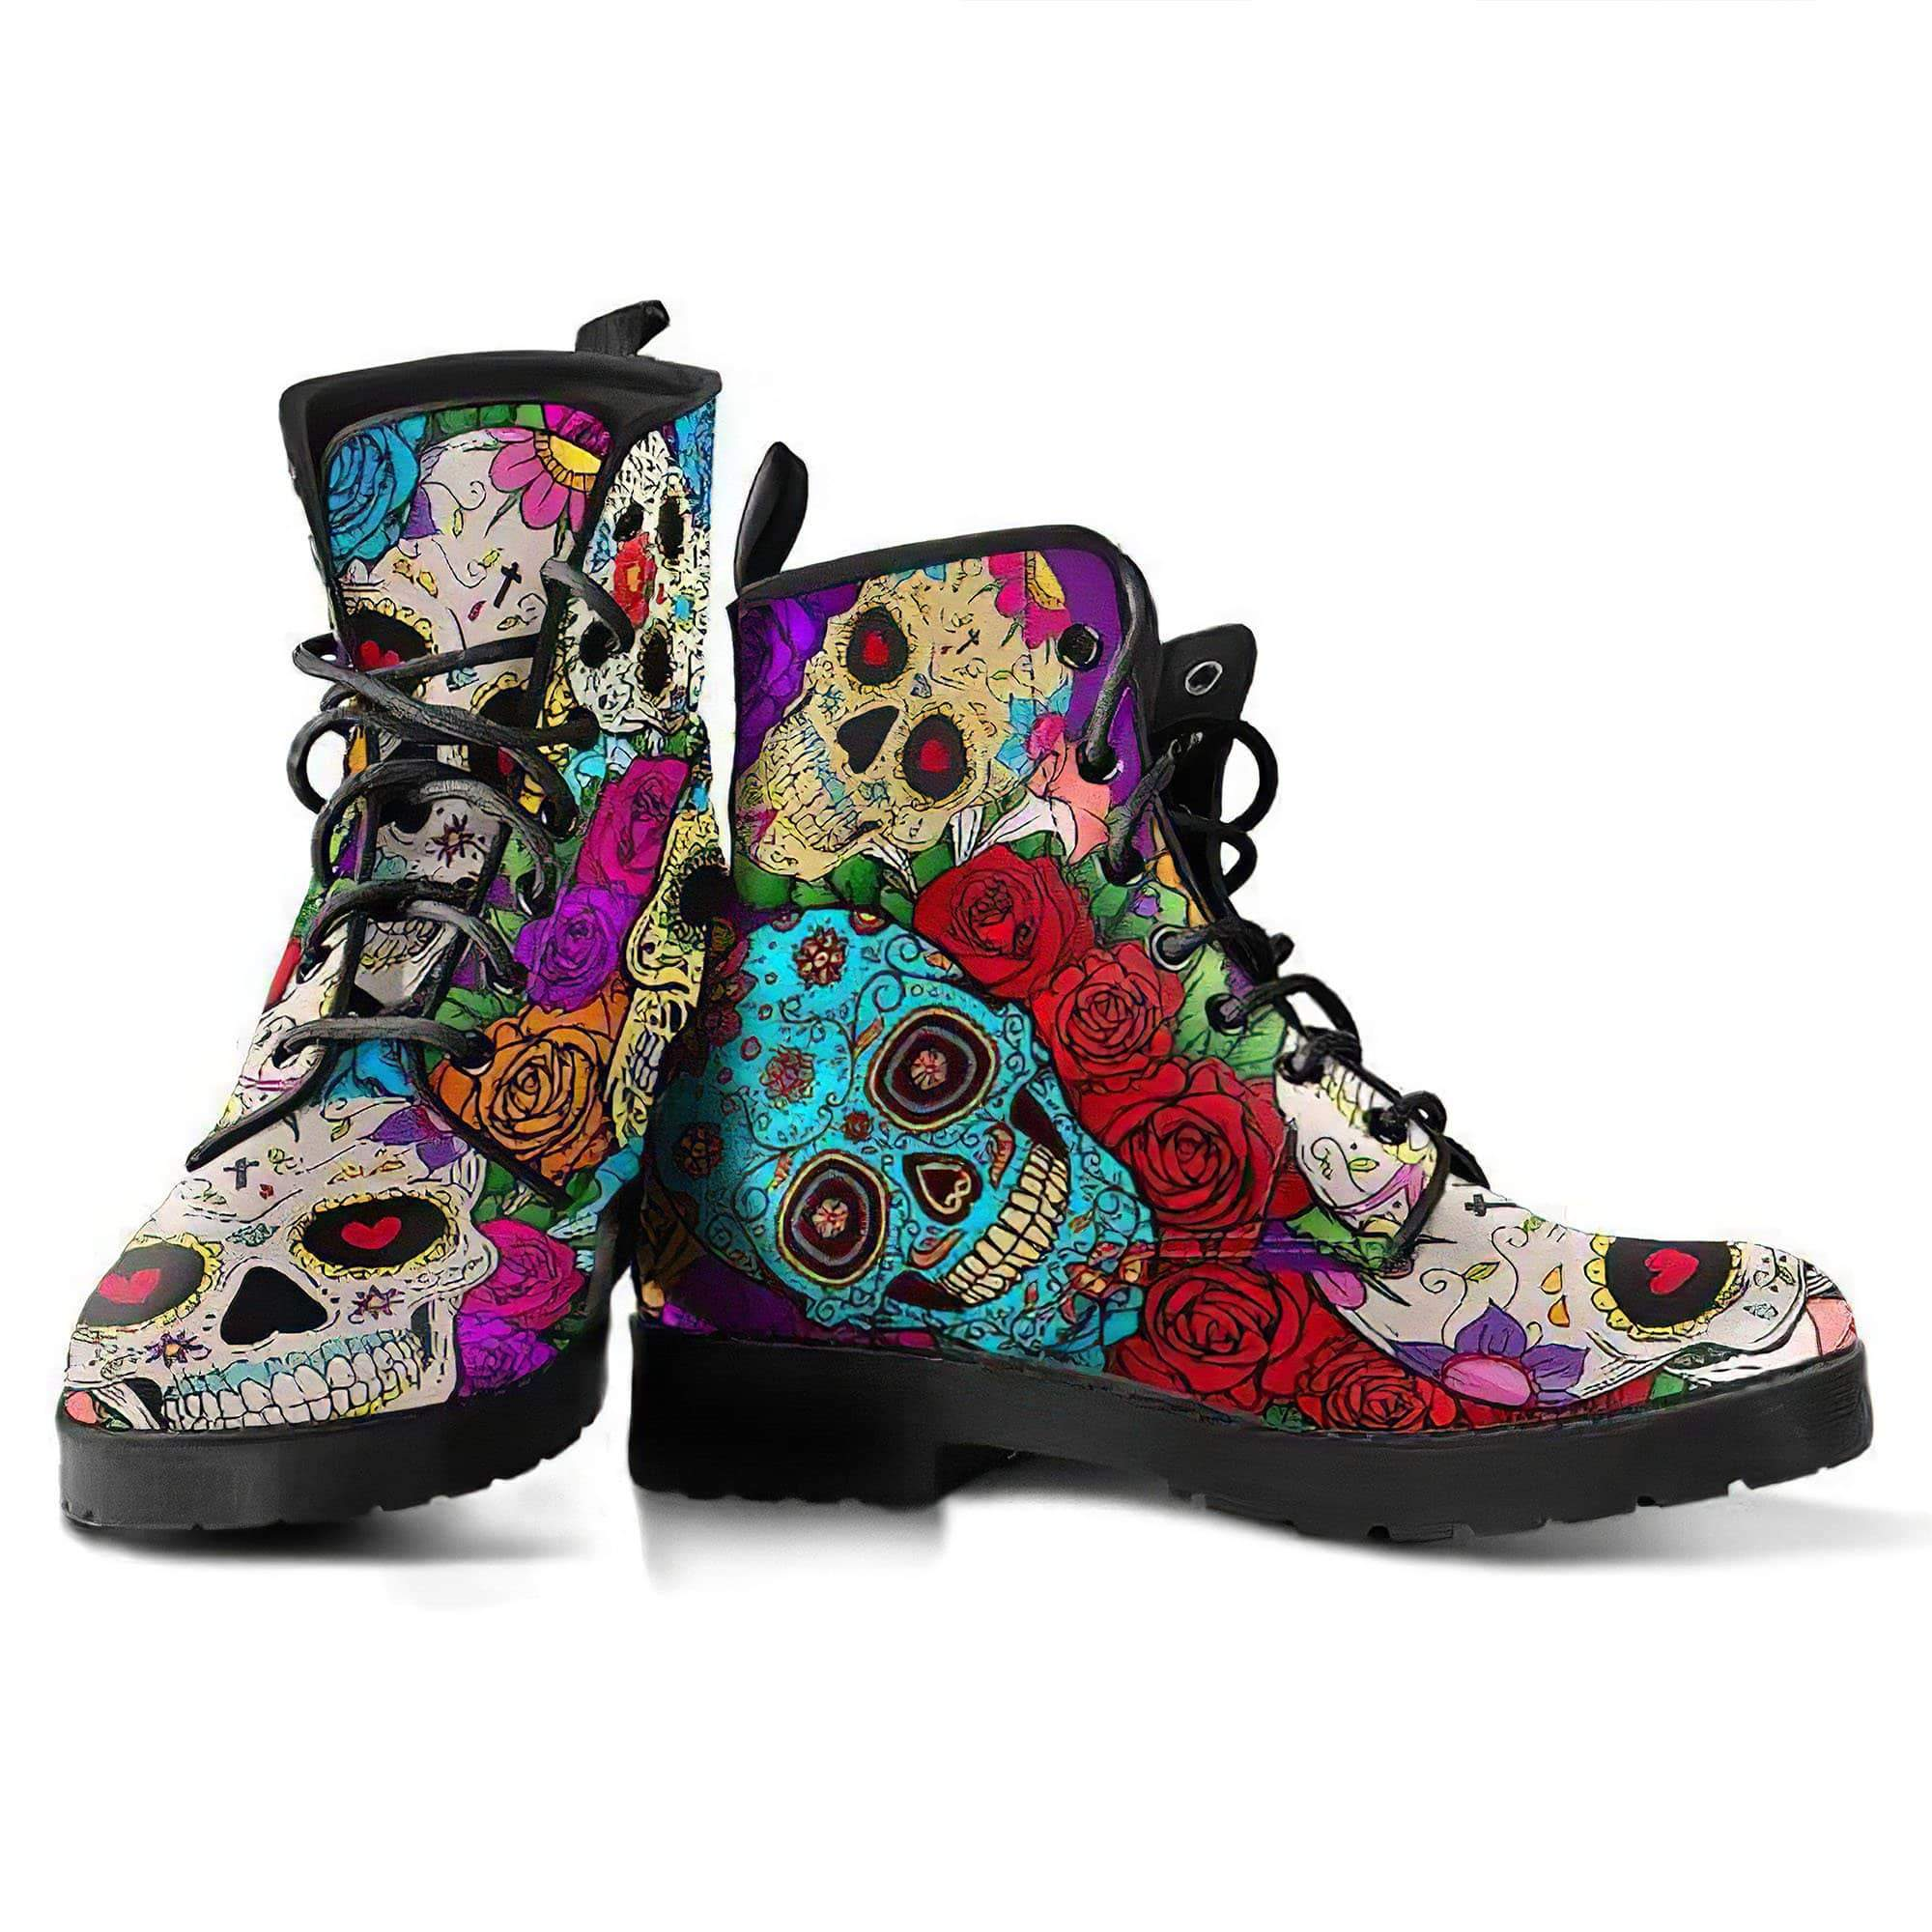 Skulls Handcrafted Boots Women's Leather Boots